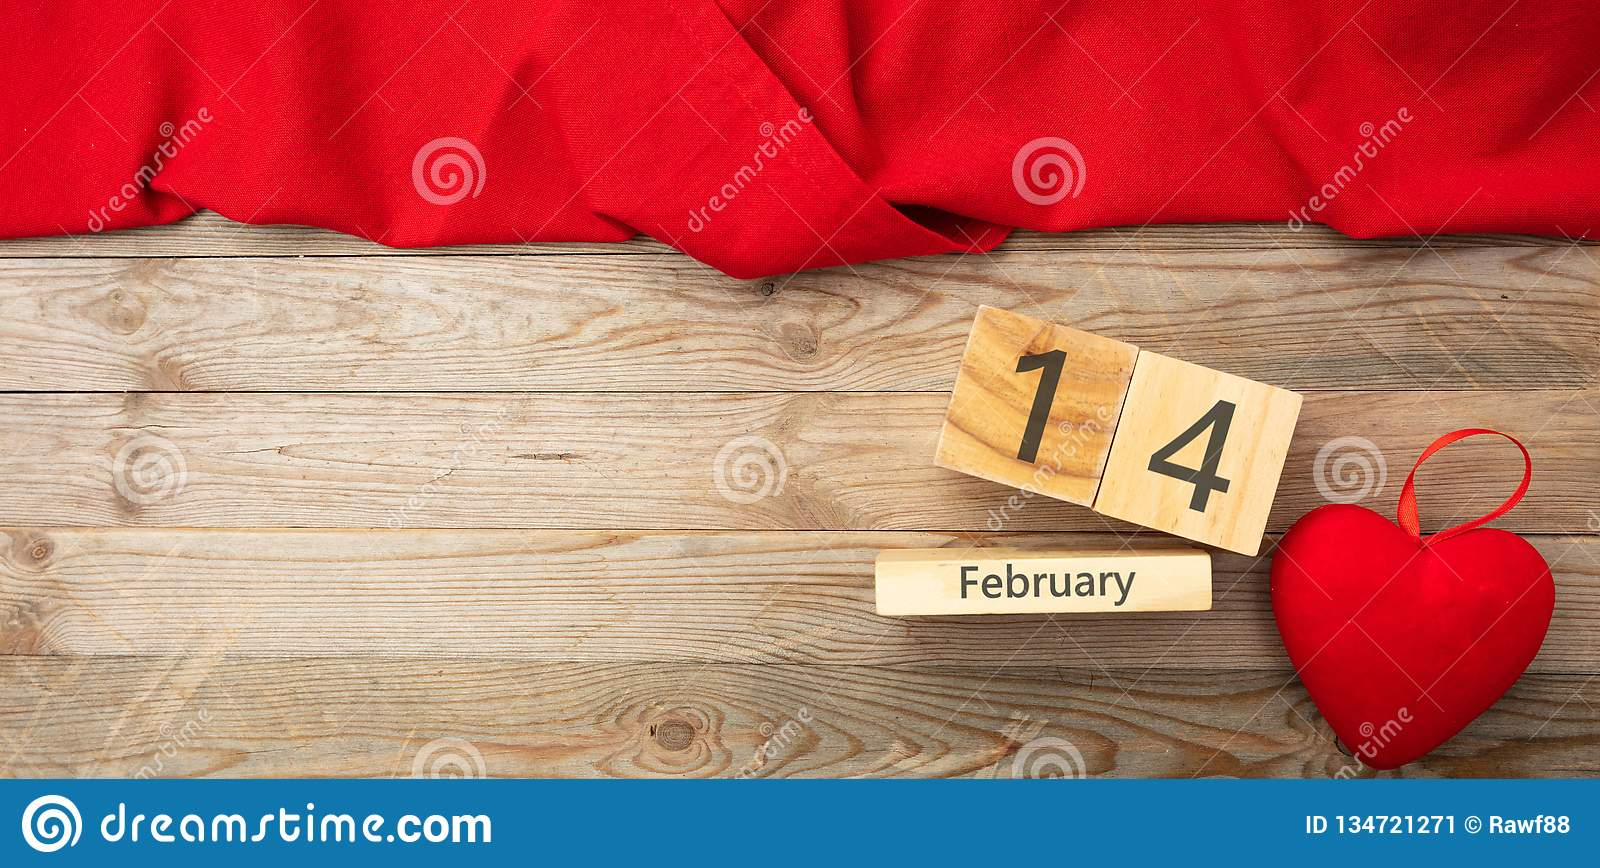 Valentines day. Top view of red heart and calendar date, wooden background